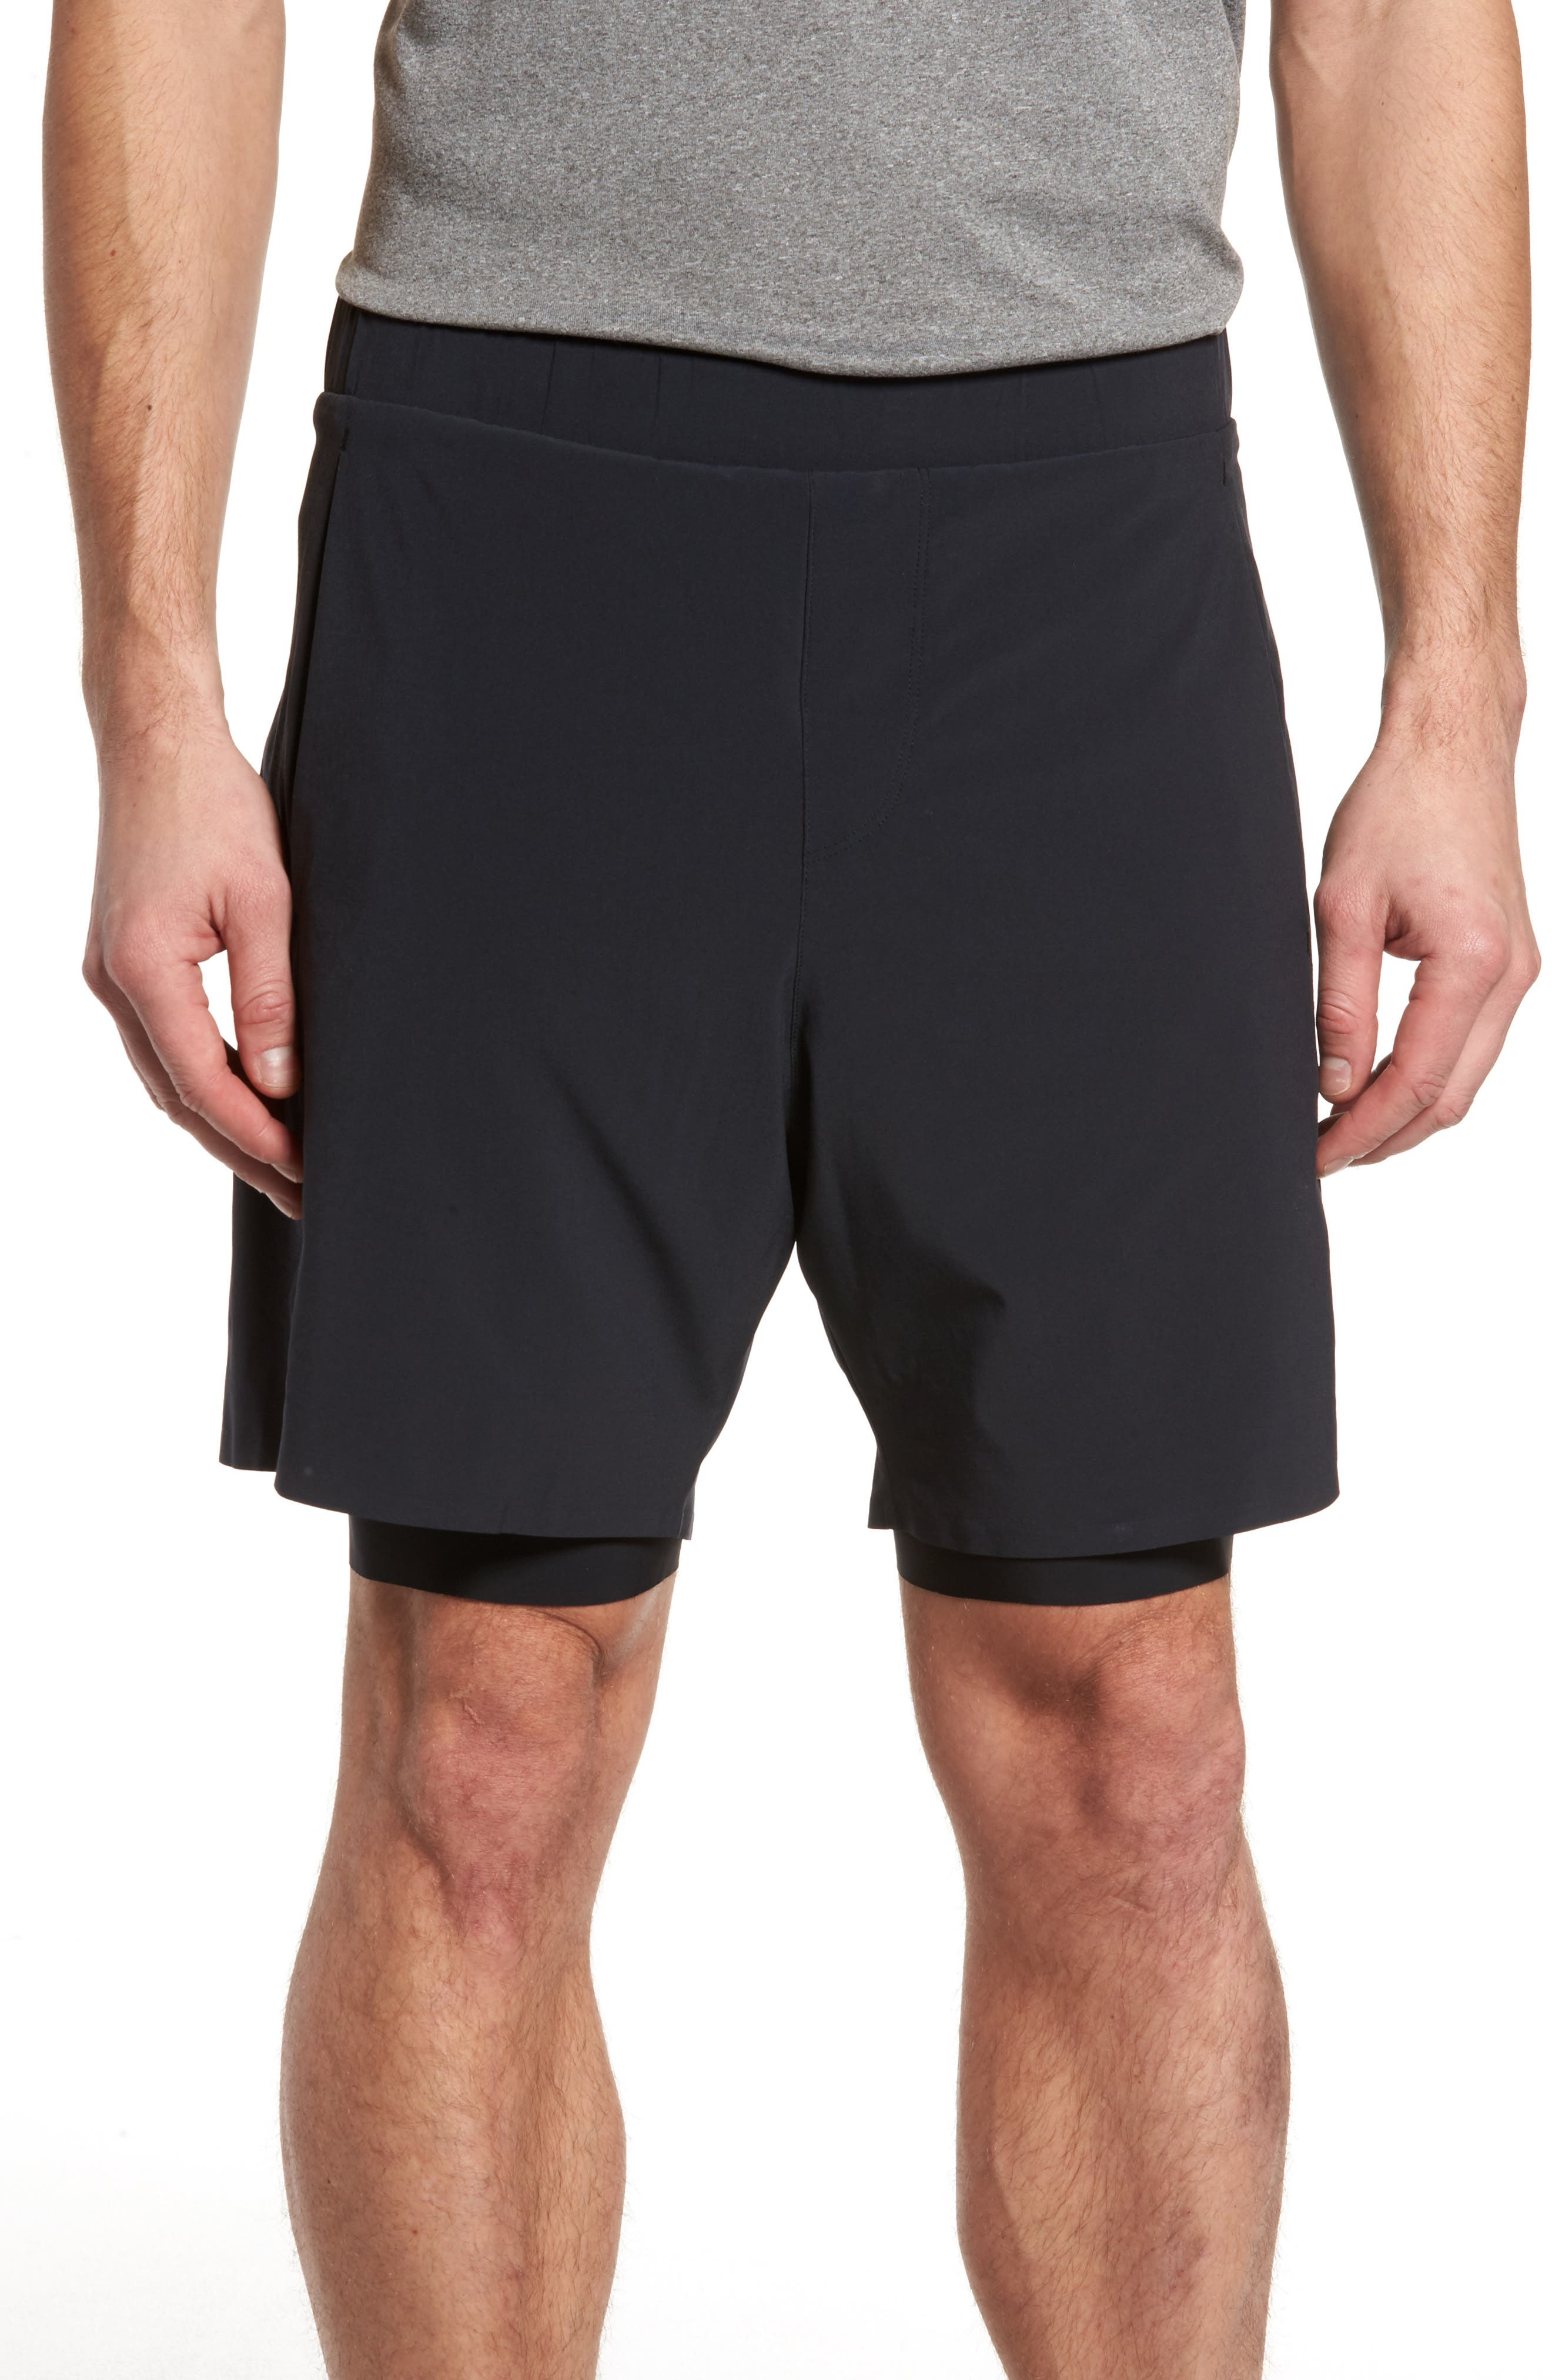 Interval 2-in-1 Shorts,                         Main,                         color, Black